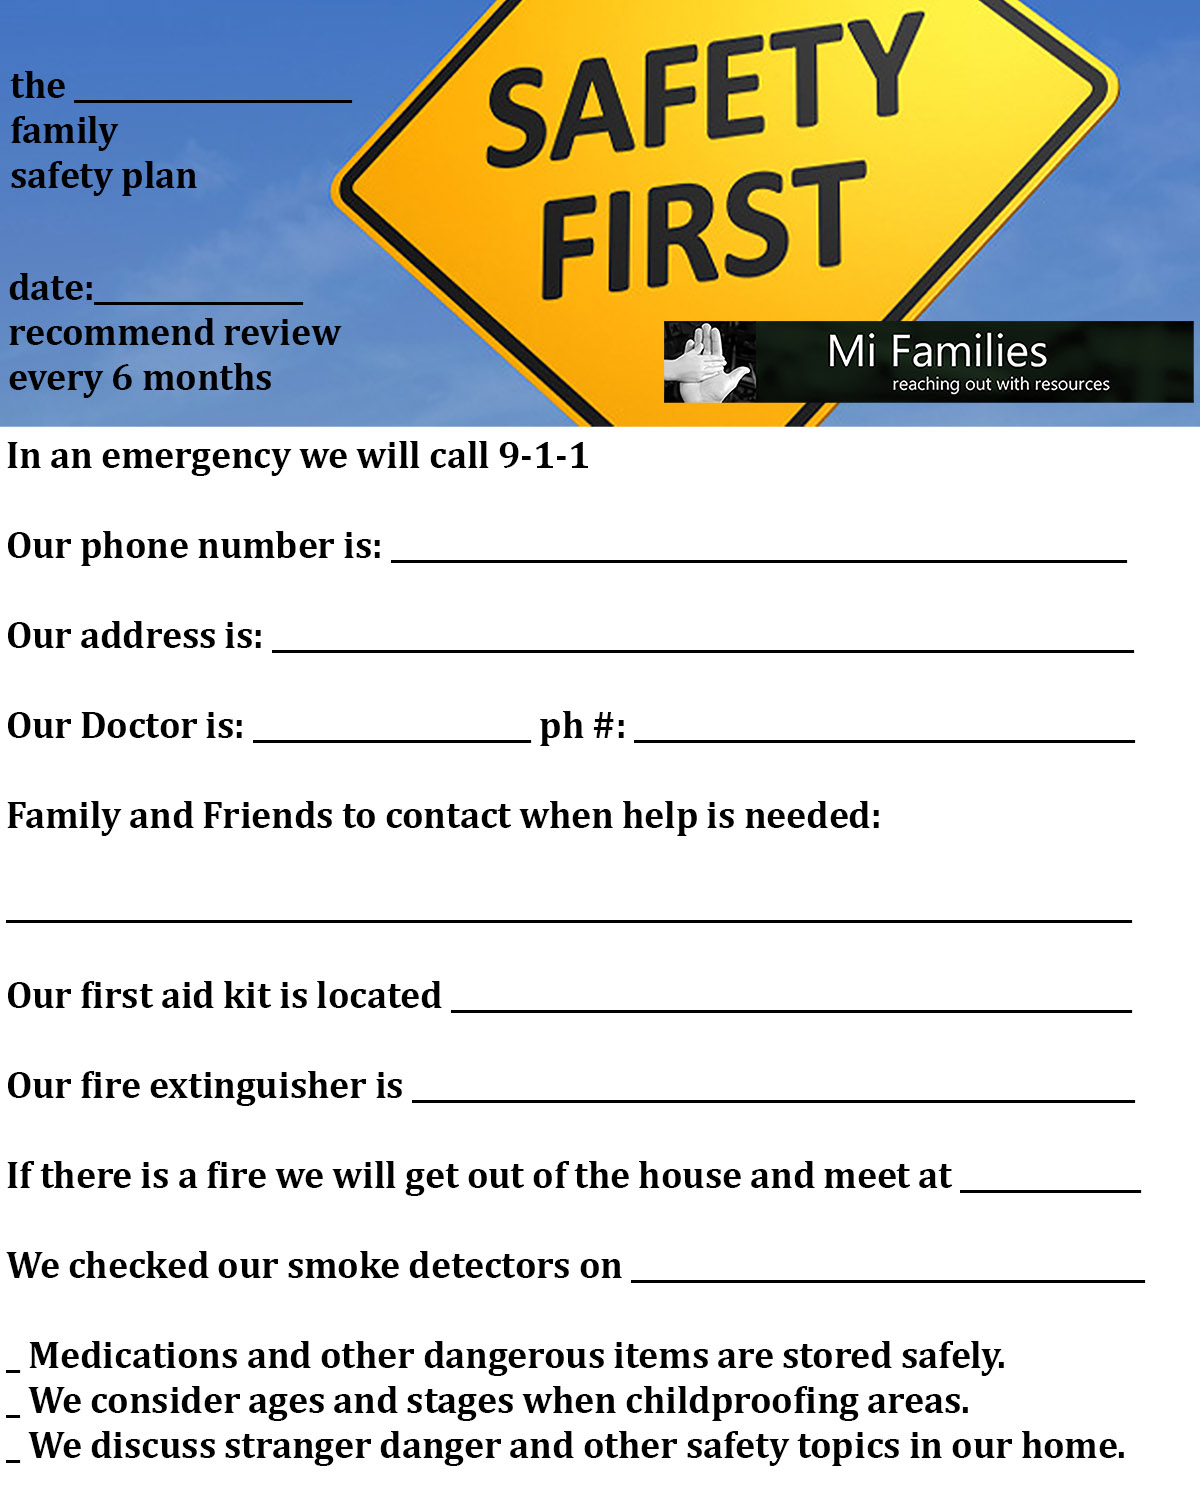 Free Worksheet First Aid Worksheets For Kids free printable safety worksheets abitlikethis first aid for kids coloring pages